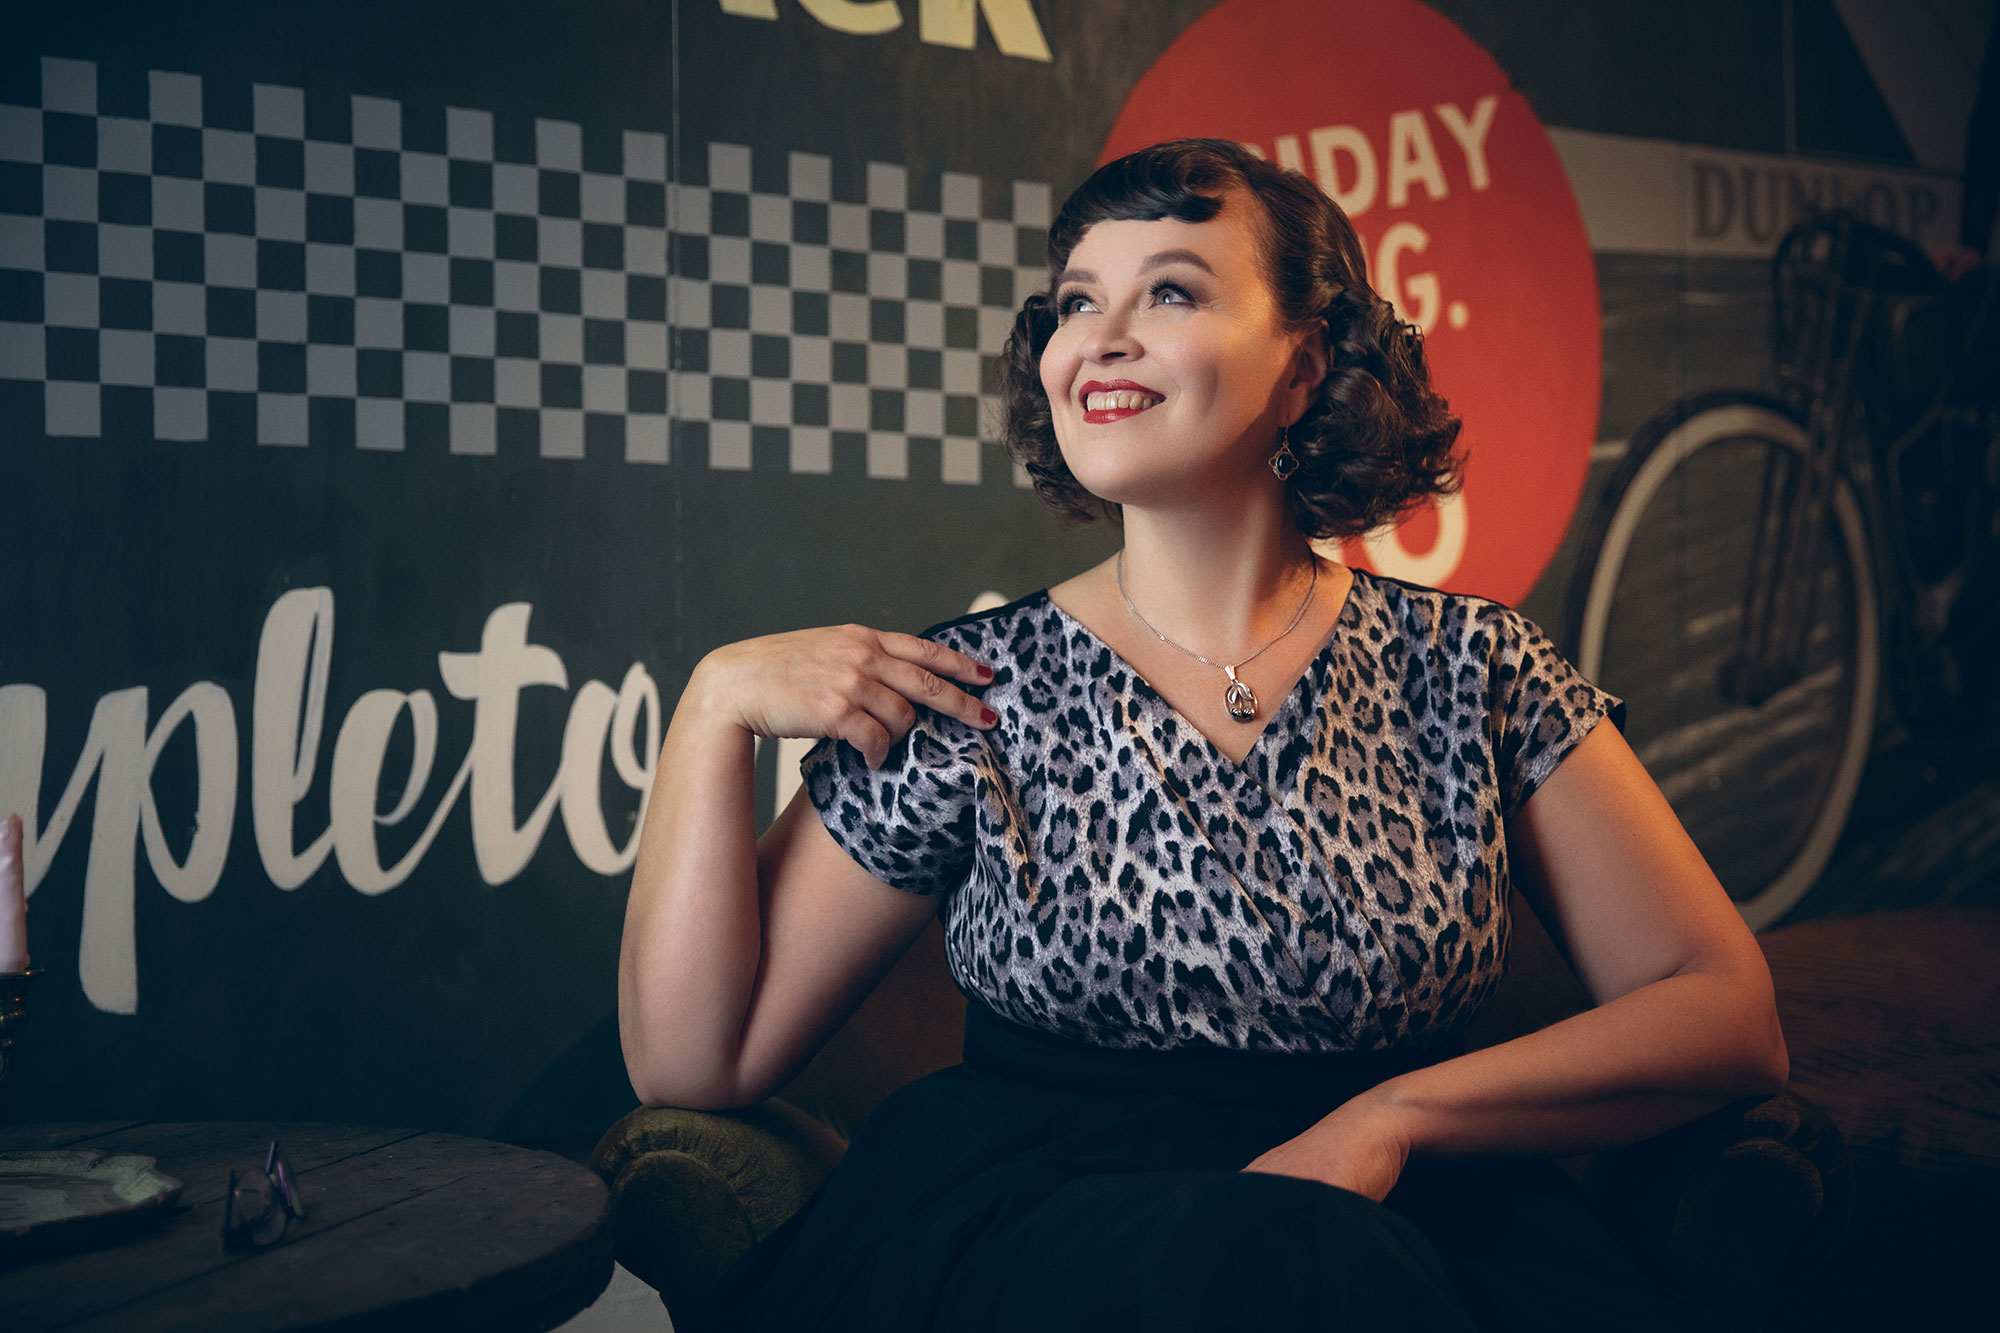 Vintage Pinup Makeover Shoots: Tigz Rice x Miss Victory Violet Makeover Day Helsinki © Tigz Rice Ltd 2018. https://www.tigzrice.com